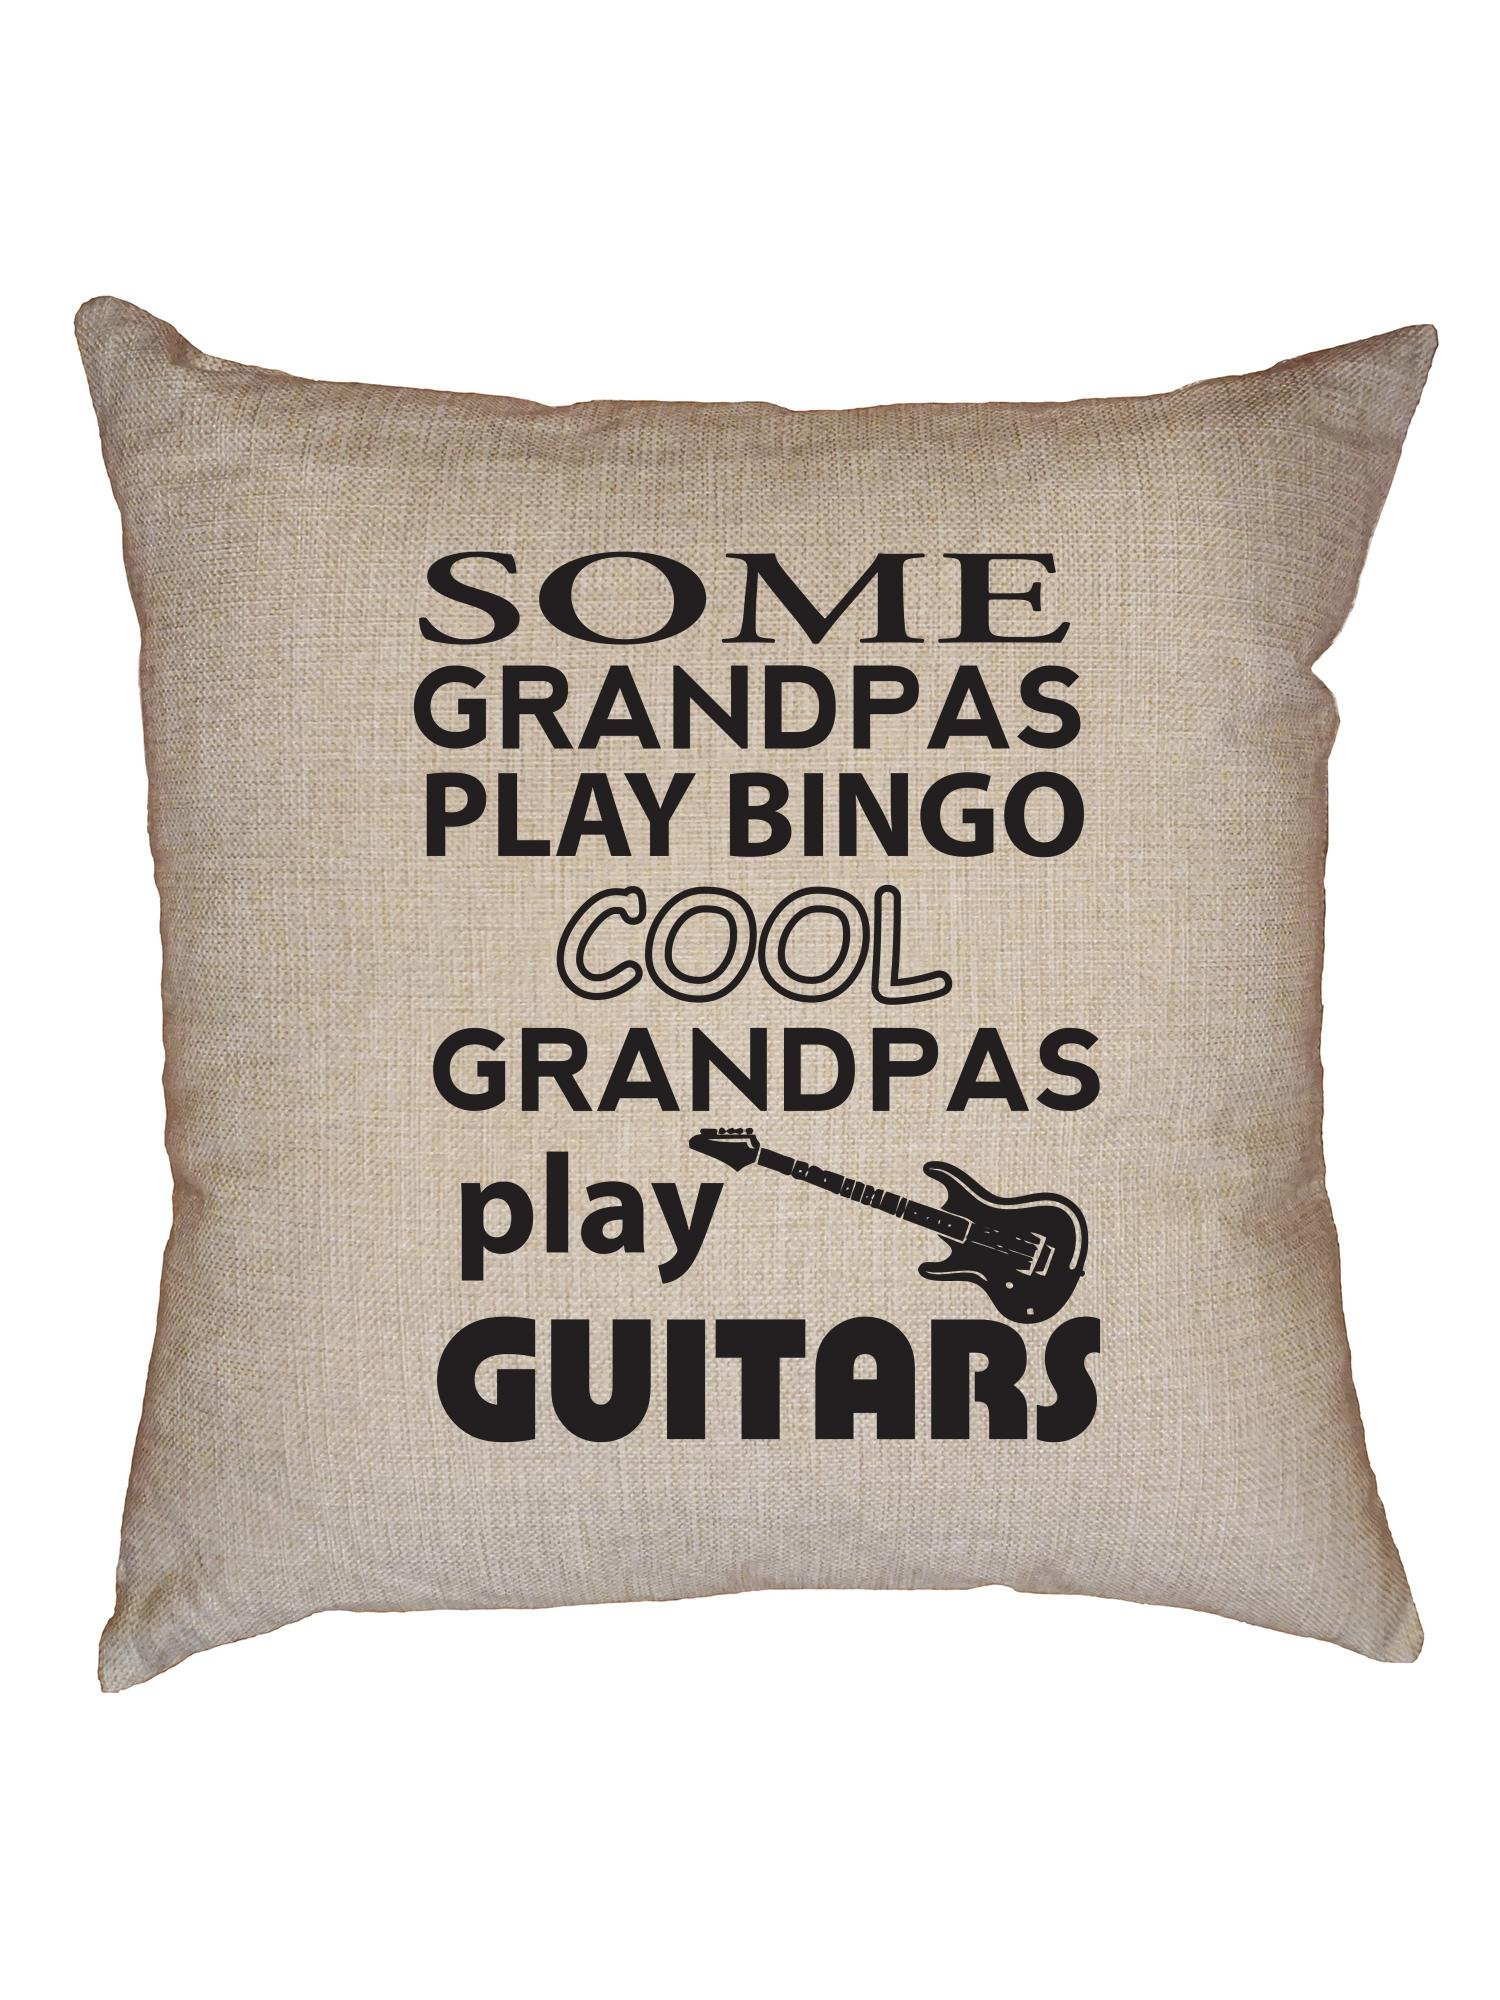 Hollywood Thread Some Granpas Play Bingo Cool Ones Play Guitars Decorative Linen Throw Cushion Pillow Case with Insert